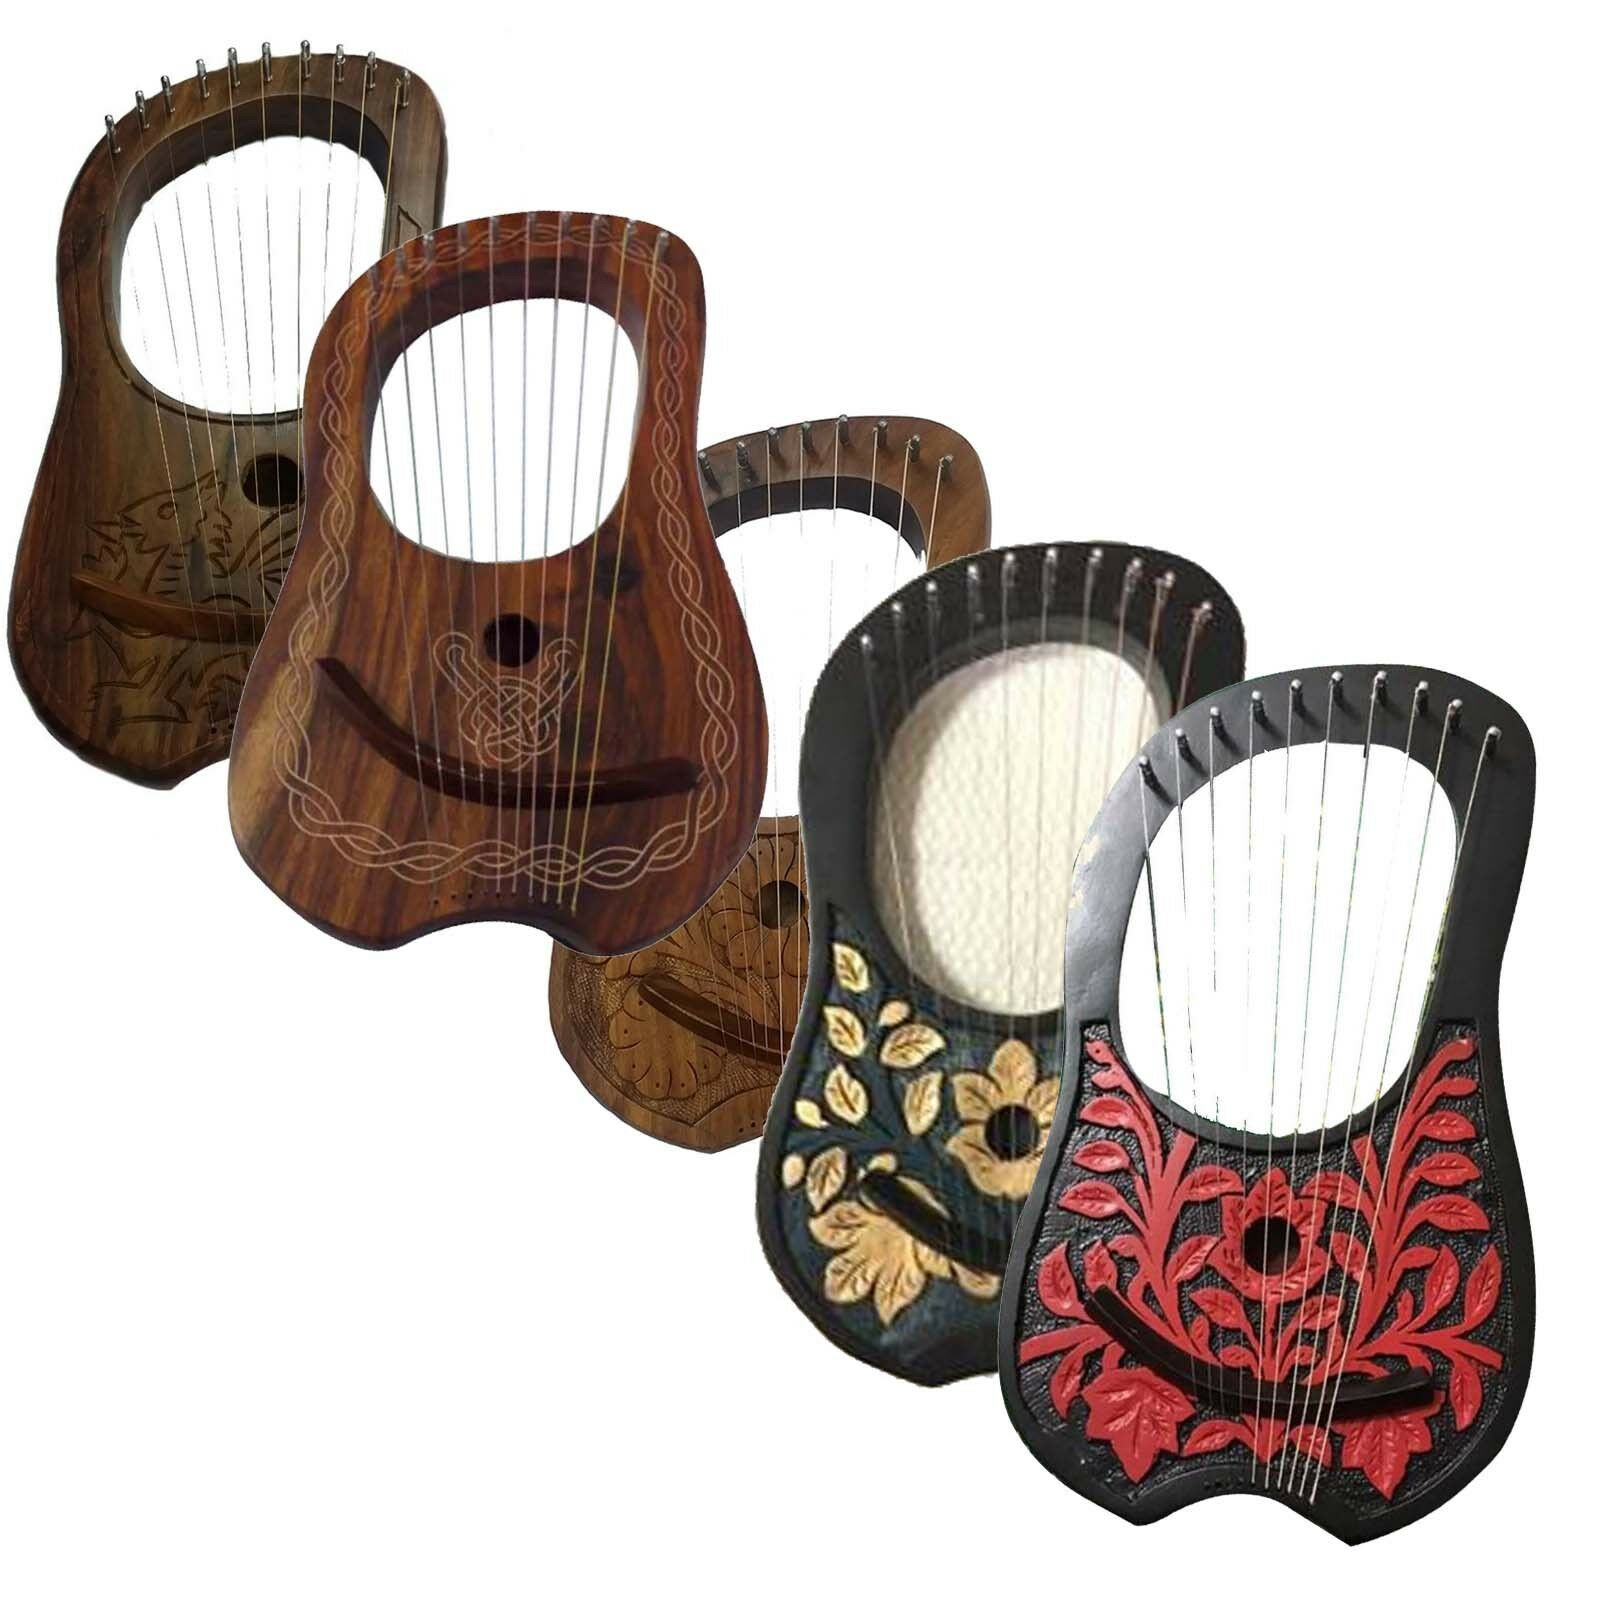 New Lyre Harp 10 Metal Strings Different Design Free carrying Bag+Tuning key